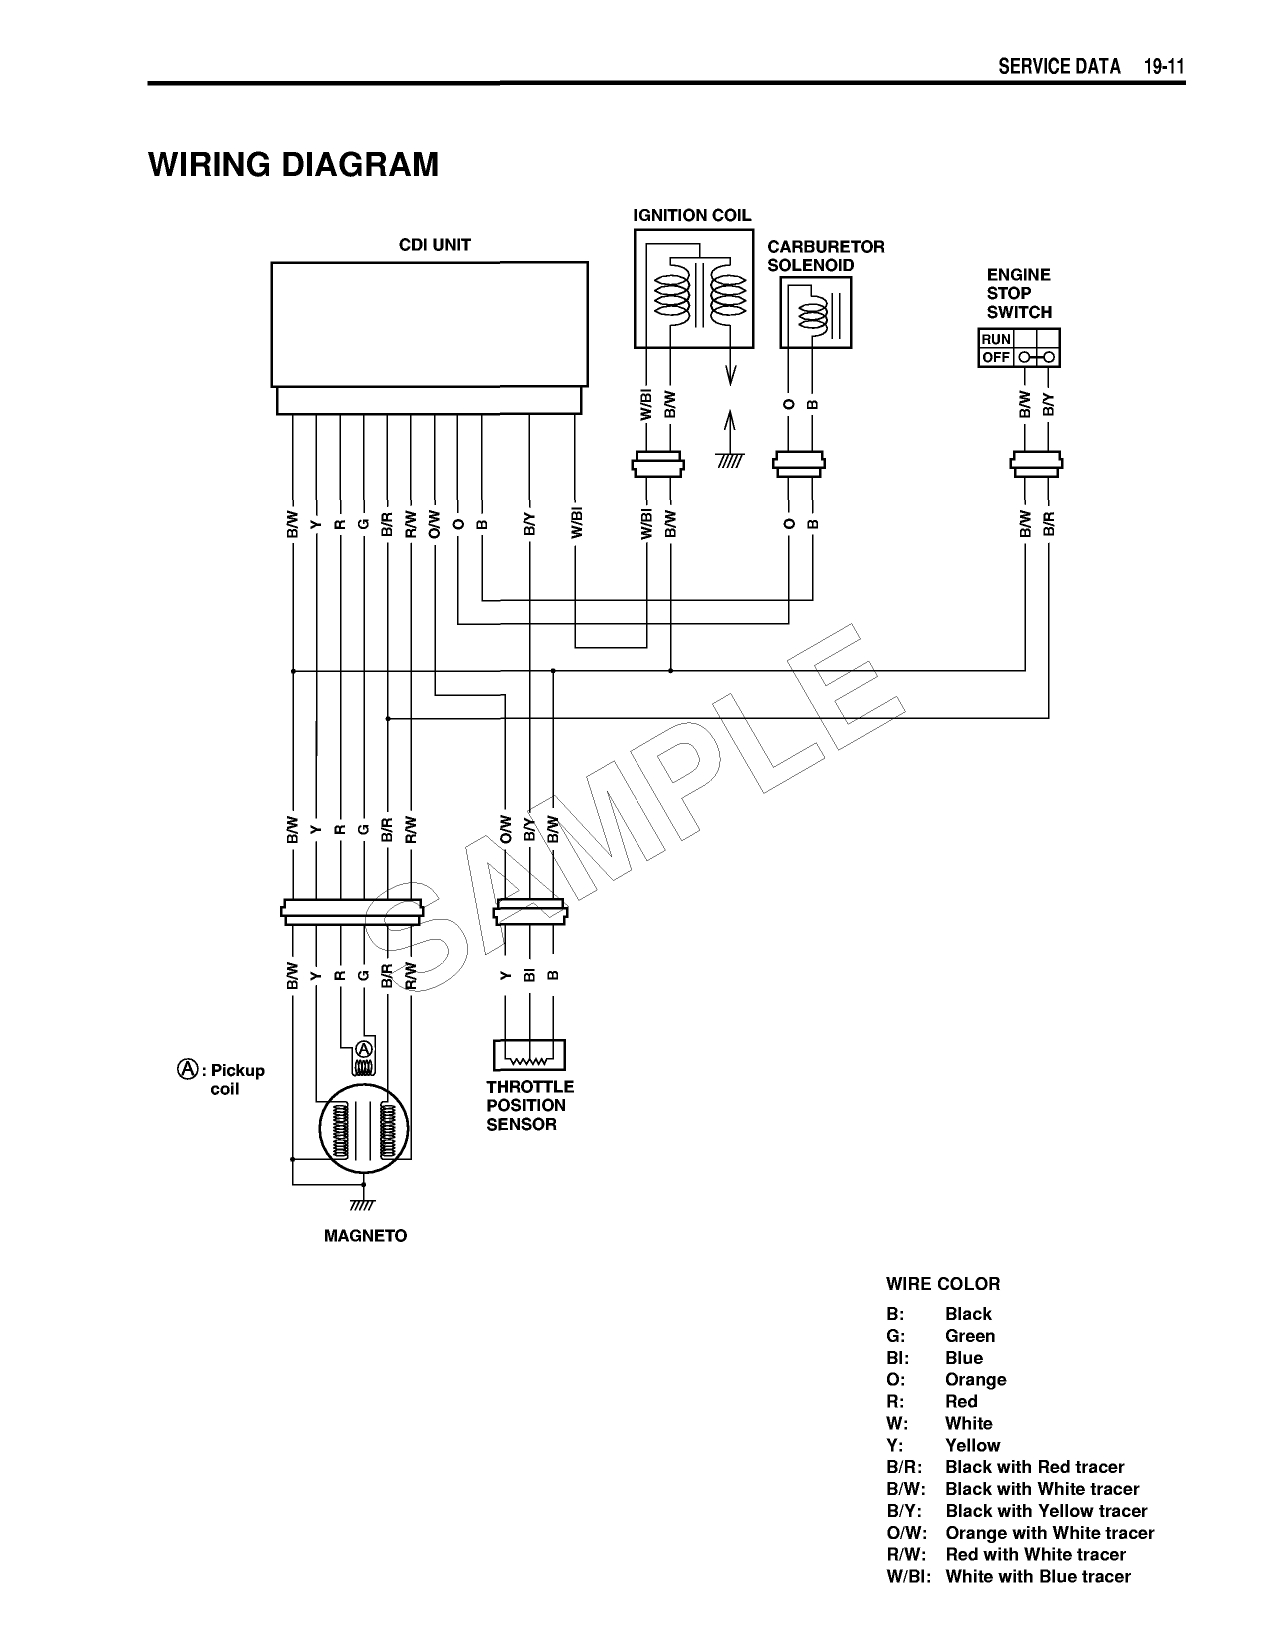 Suzuki 250 Ozark Wiring Diagram on suzuki gz250 wiring diagram